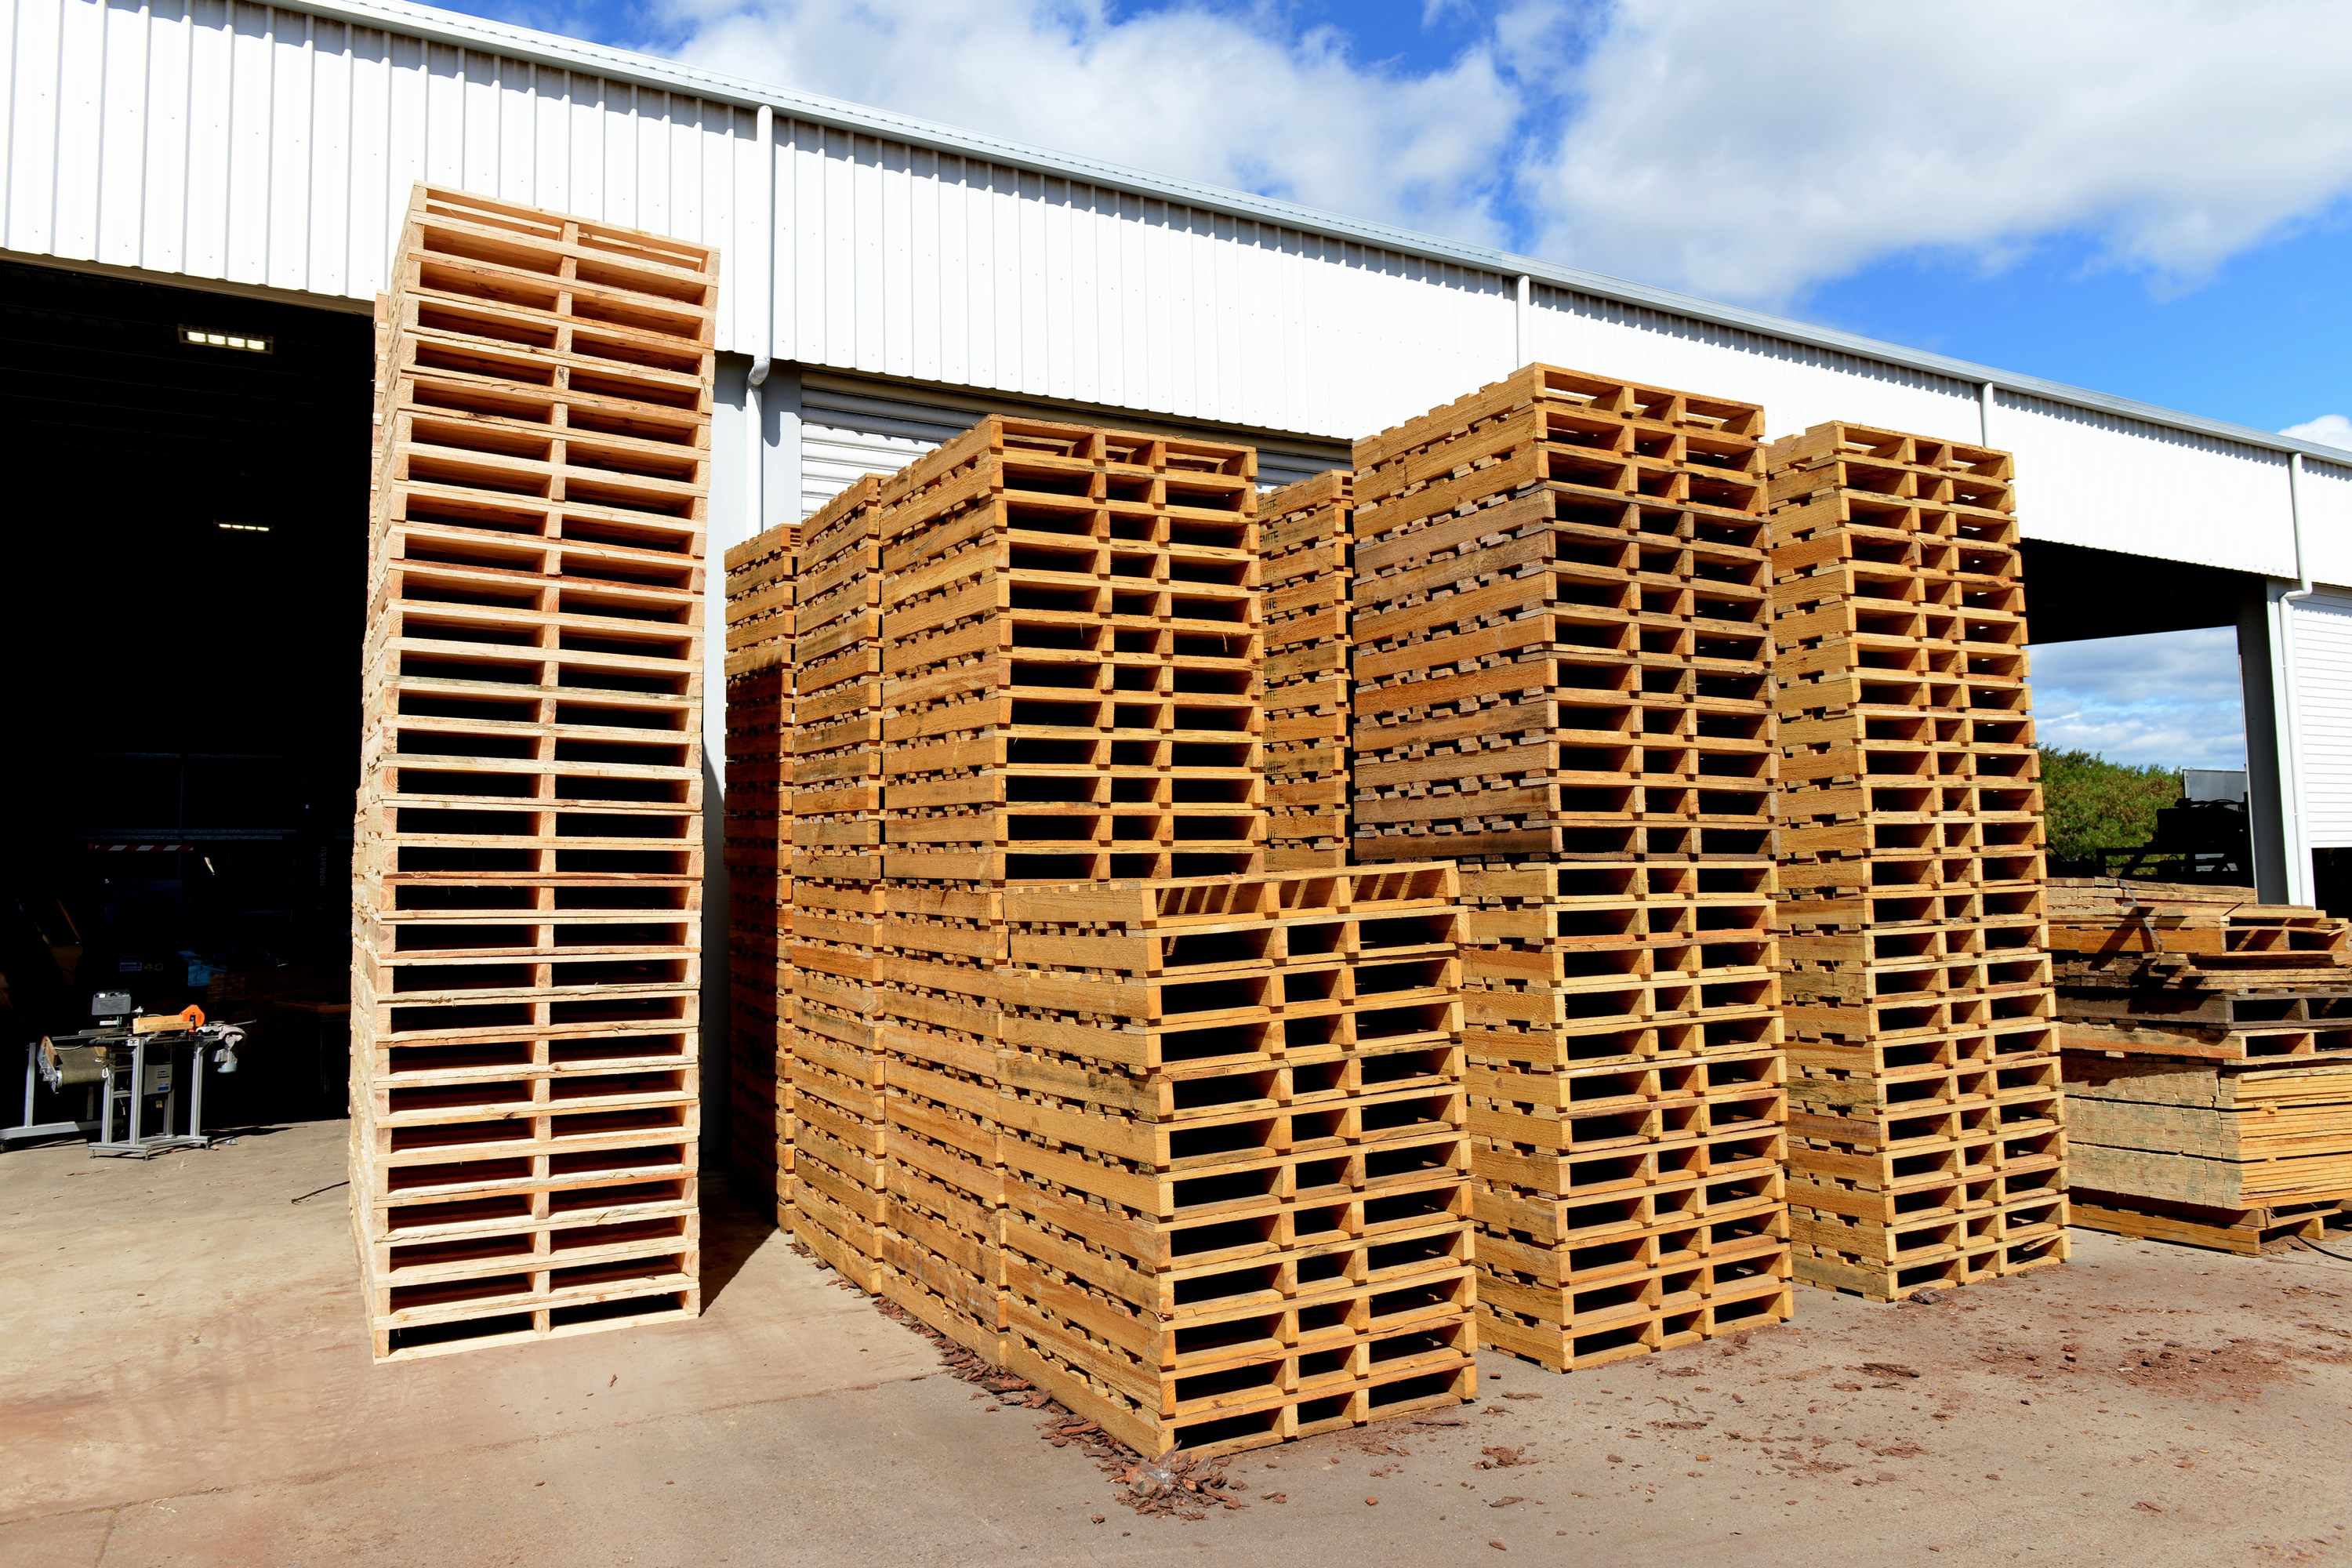 6 Useful Tips To Select The Best Wood Pallet Company